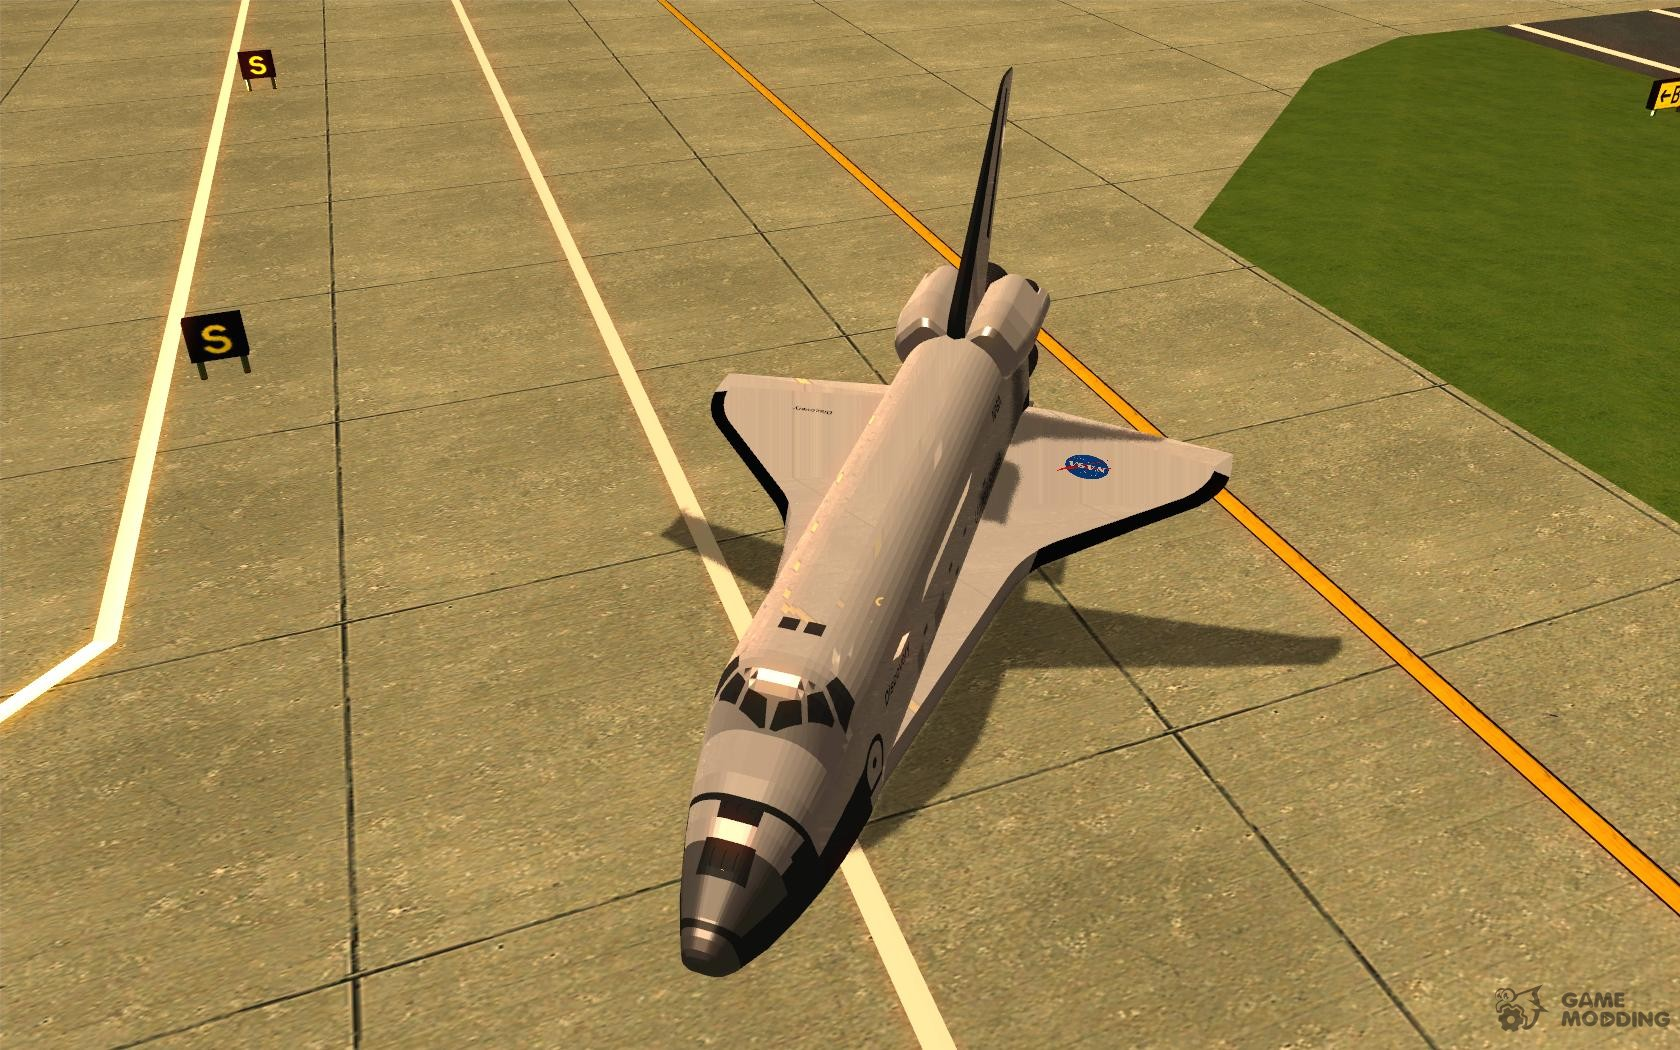 gta 5 space shuttle mission - photo #4